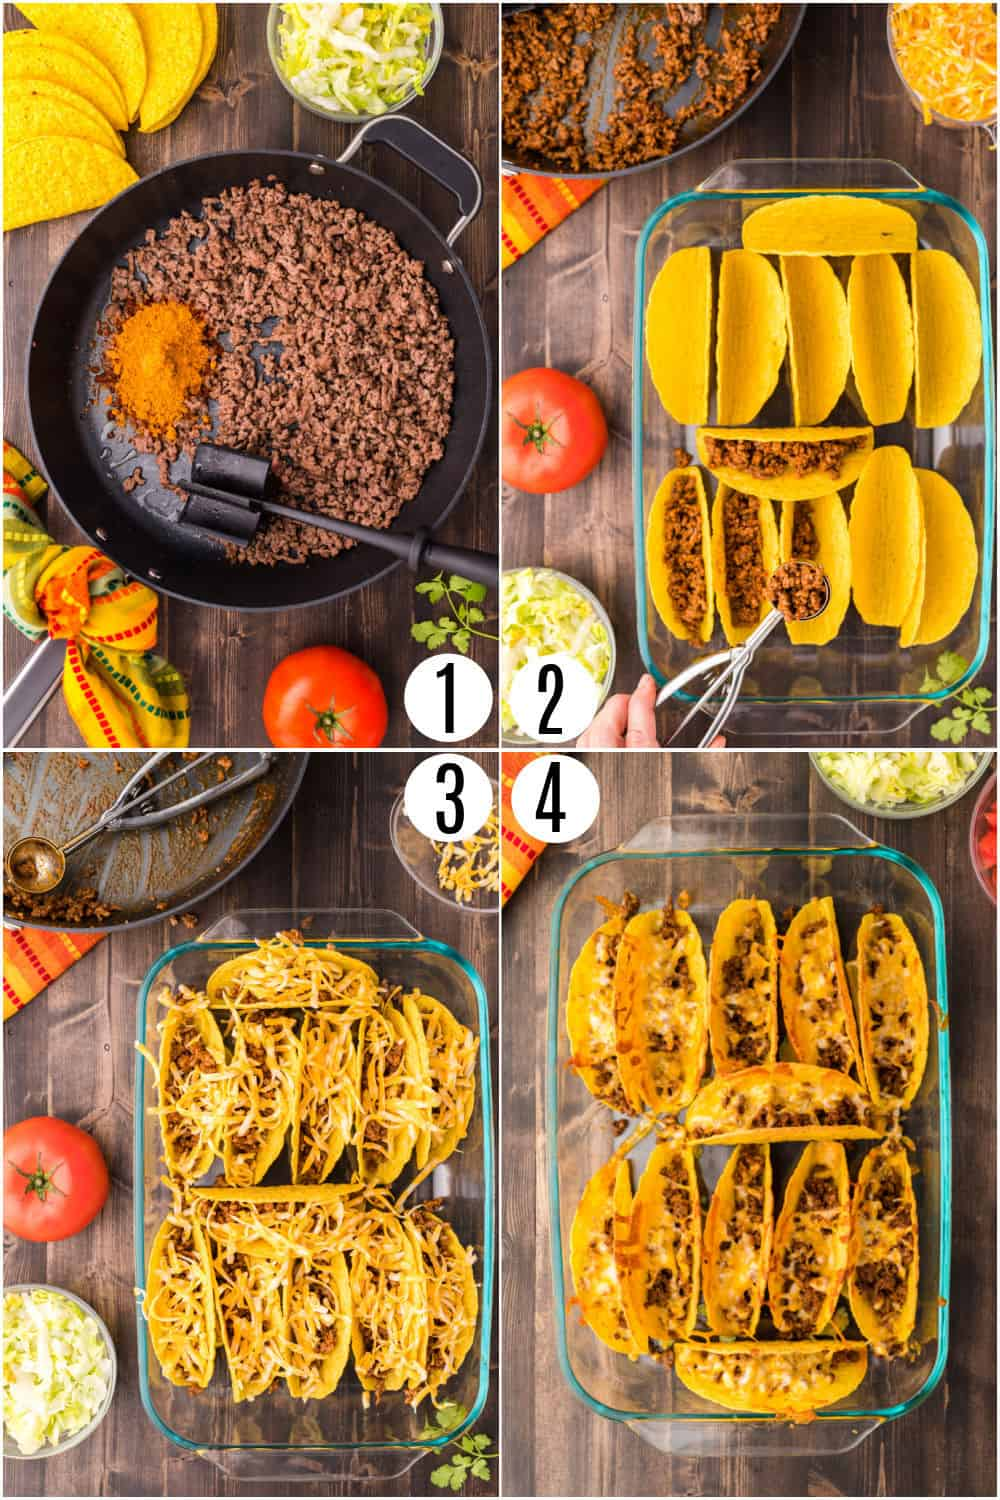 Step by step photos showing how to make baked tacos.